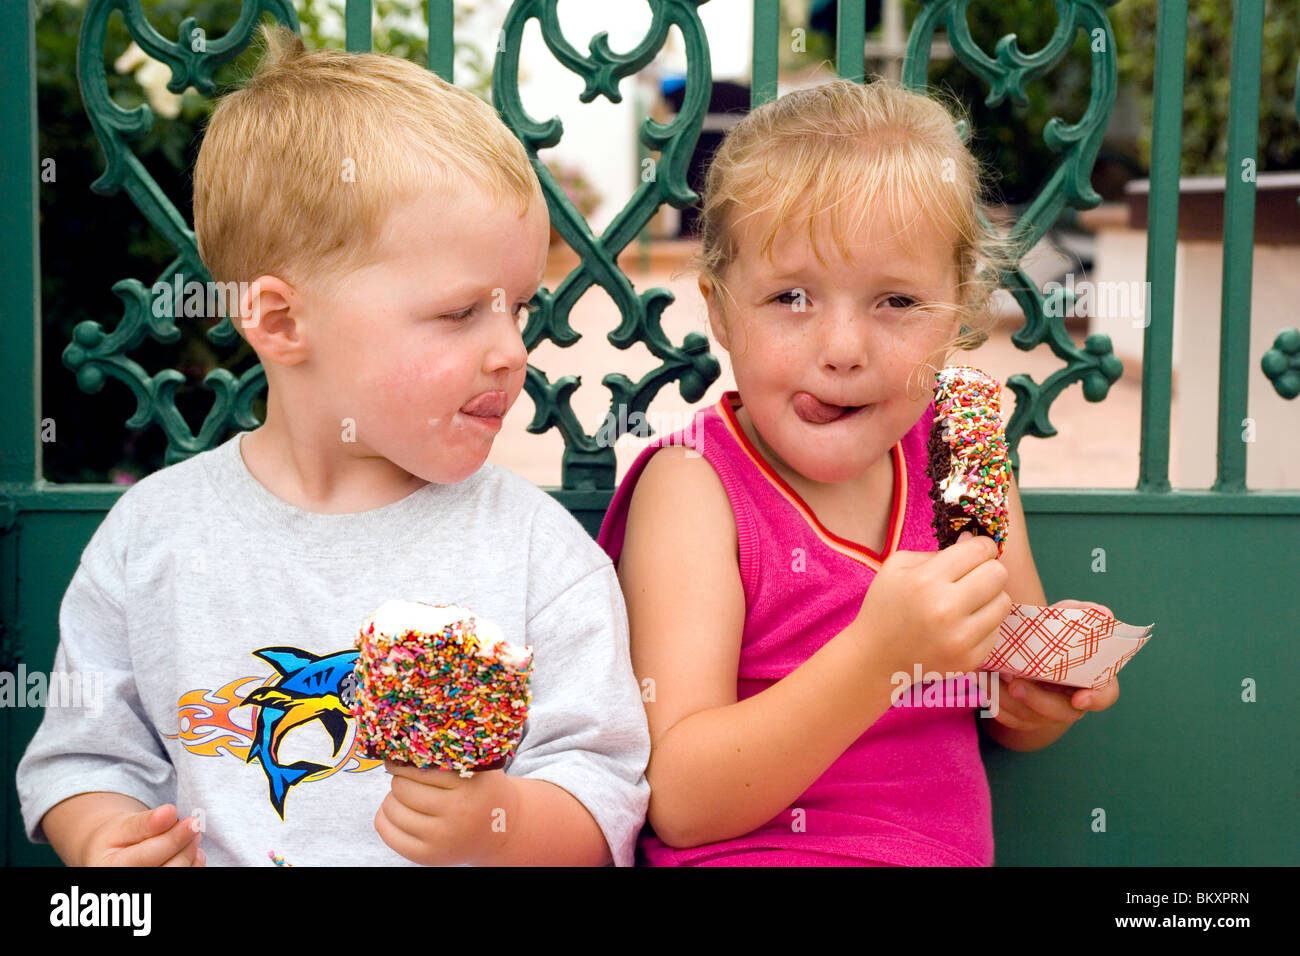 A young brother and sister enjoy Balboa Bars, a traditional and tasty ice cream treat on Balboa Island in Newport - Stock Image